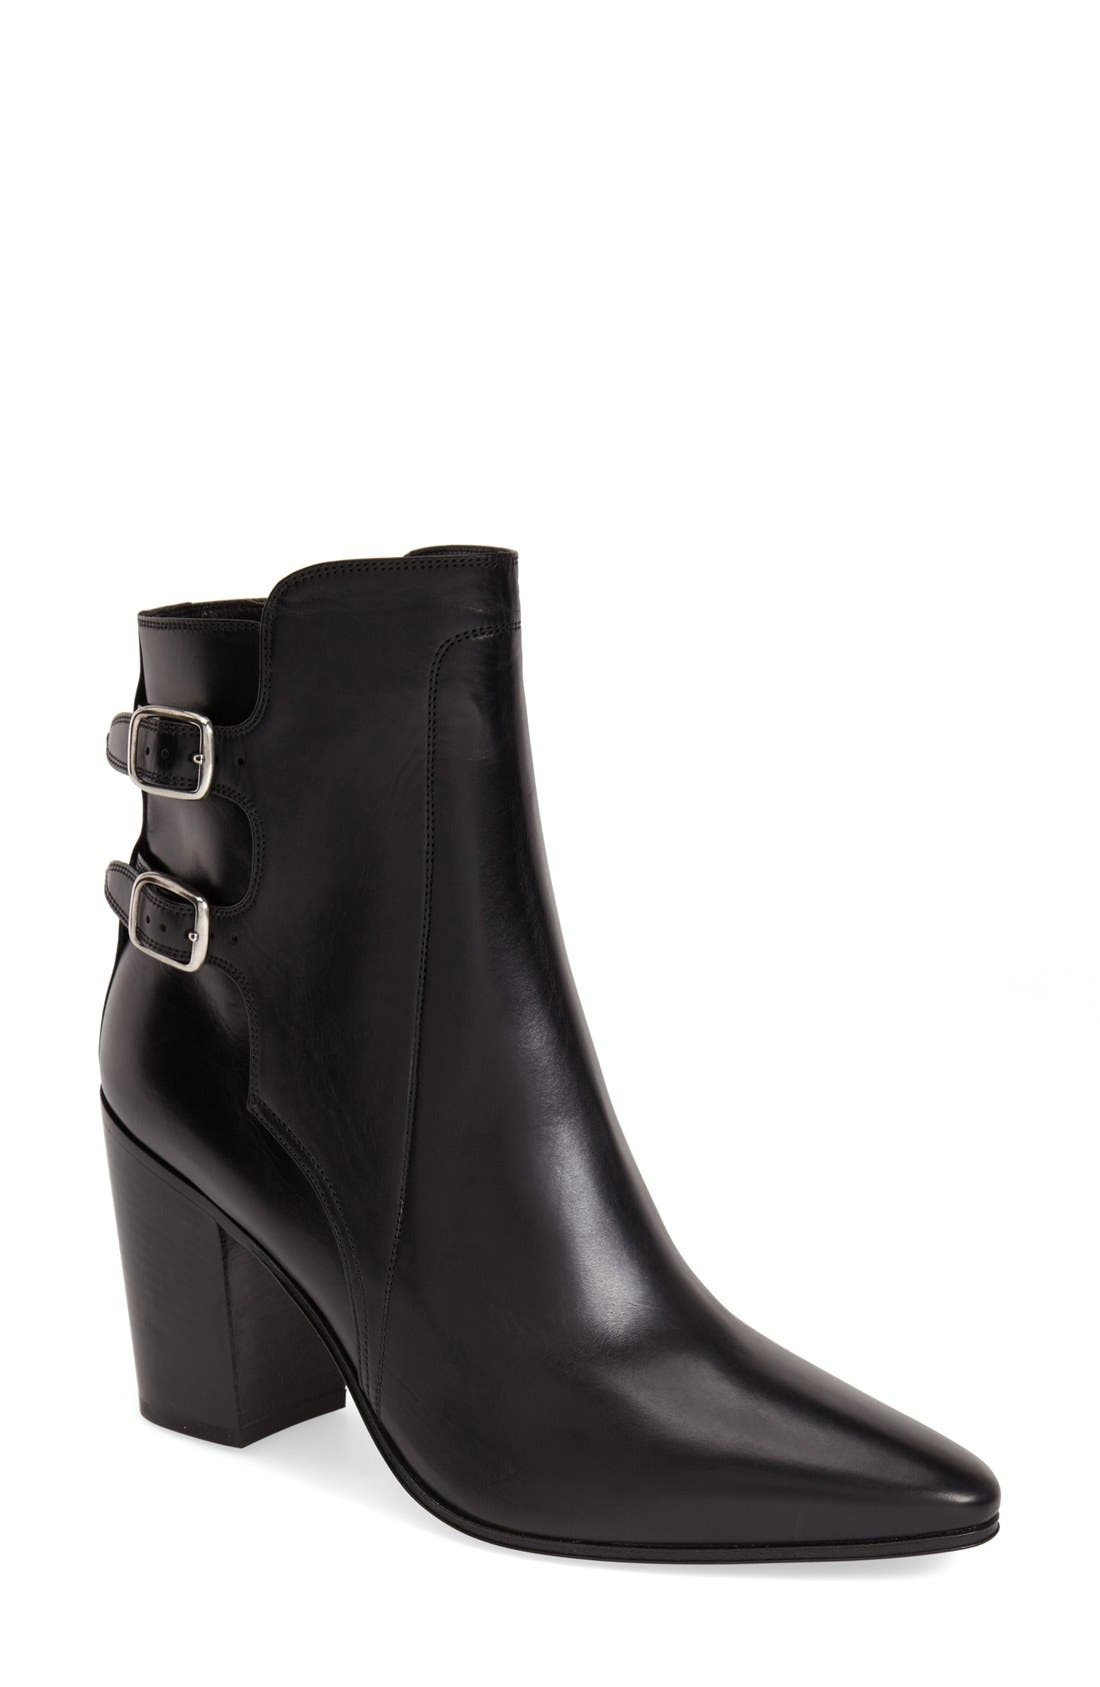 Alternate Image 1 Selected - Saint Laurent Pointy Toe Ankle Boot (Women)